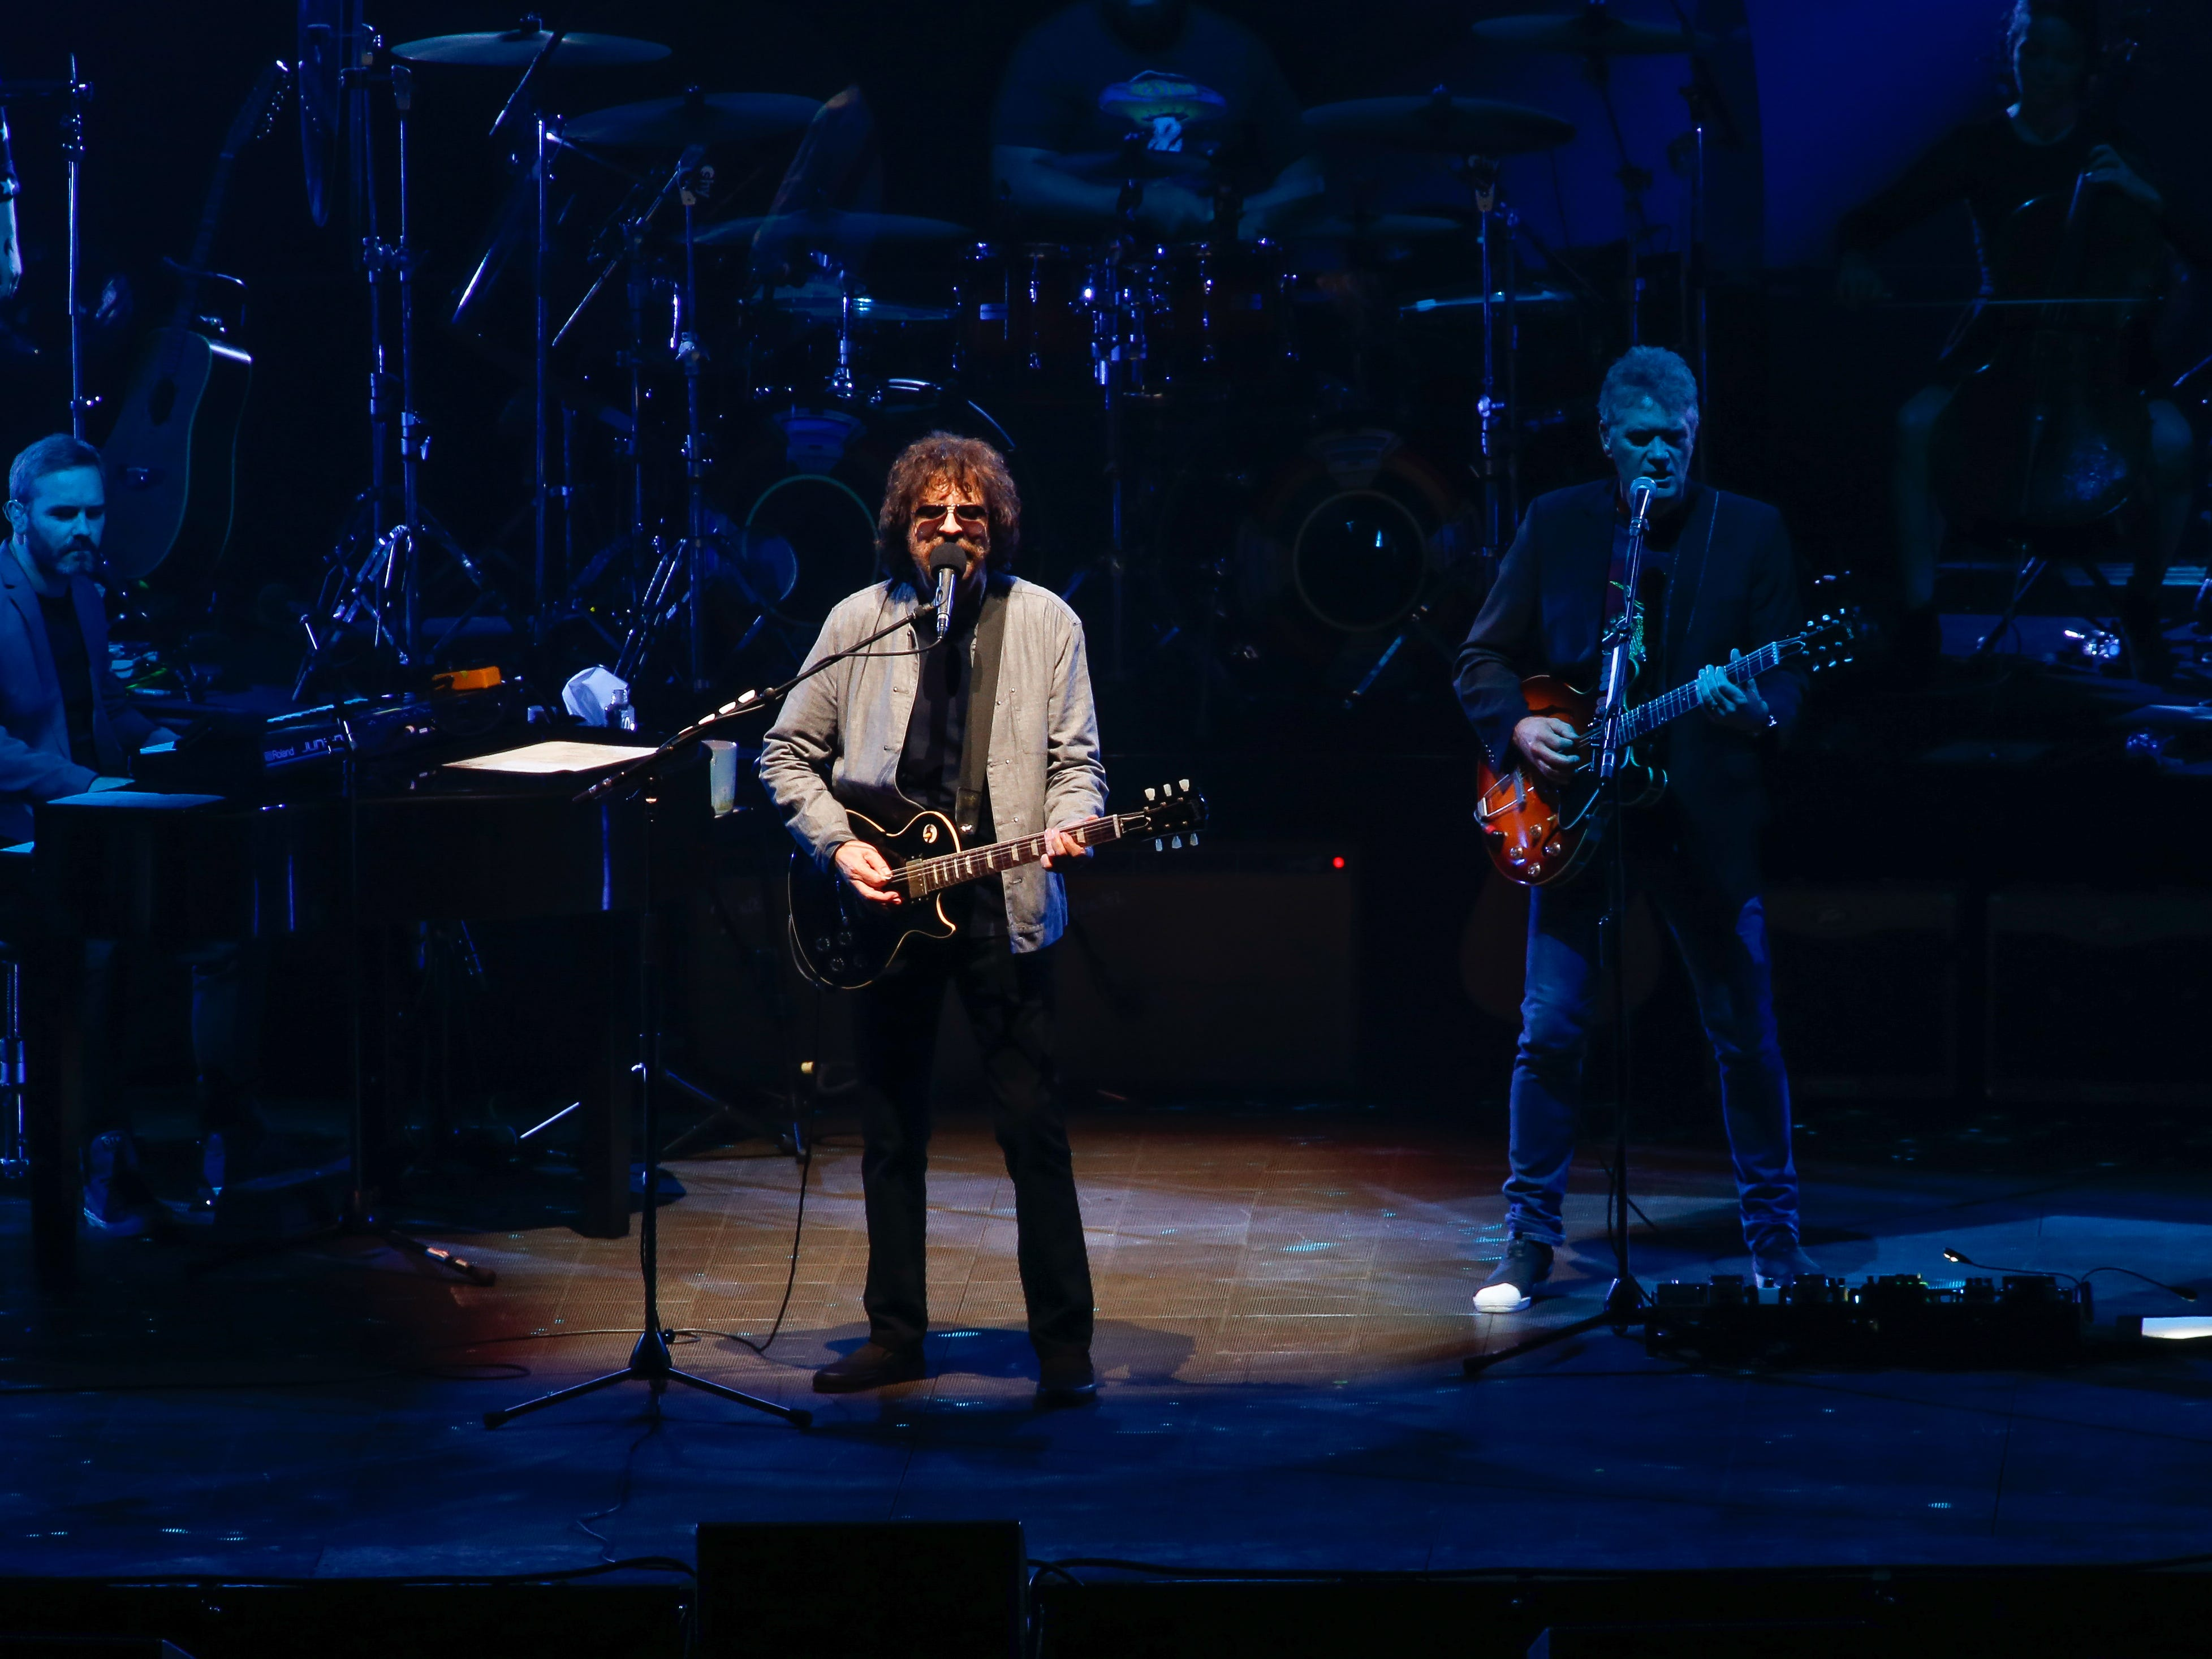 Jeff Lynne and ELO open up Thursday night's tightly arranged concert at Little Caesars Arena, running through the art-rock's group catalog of hits.